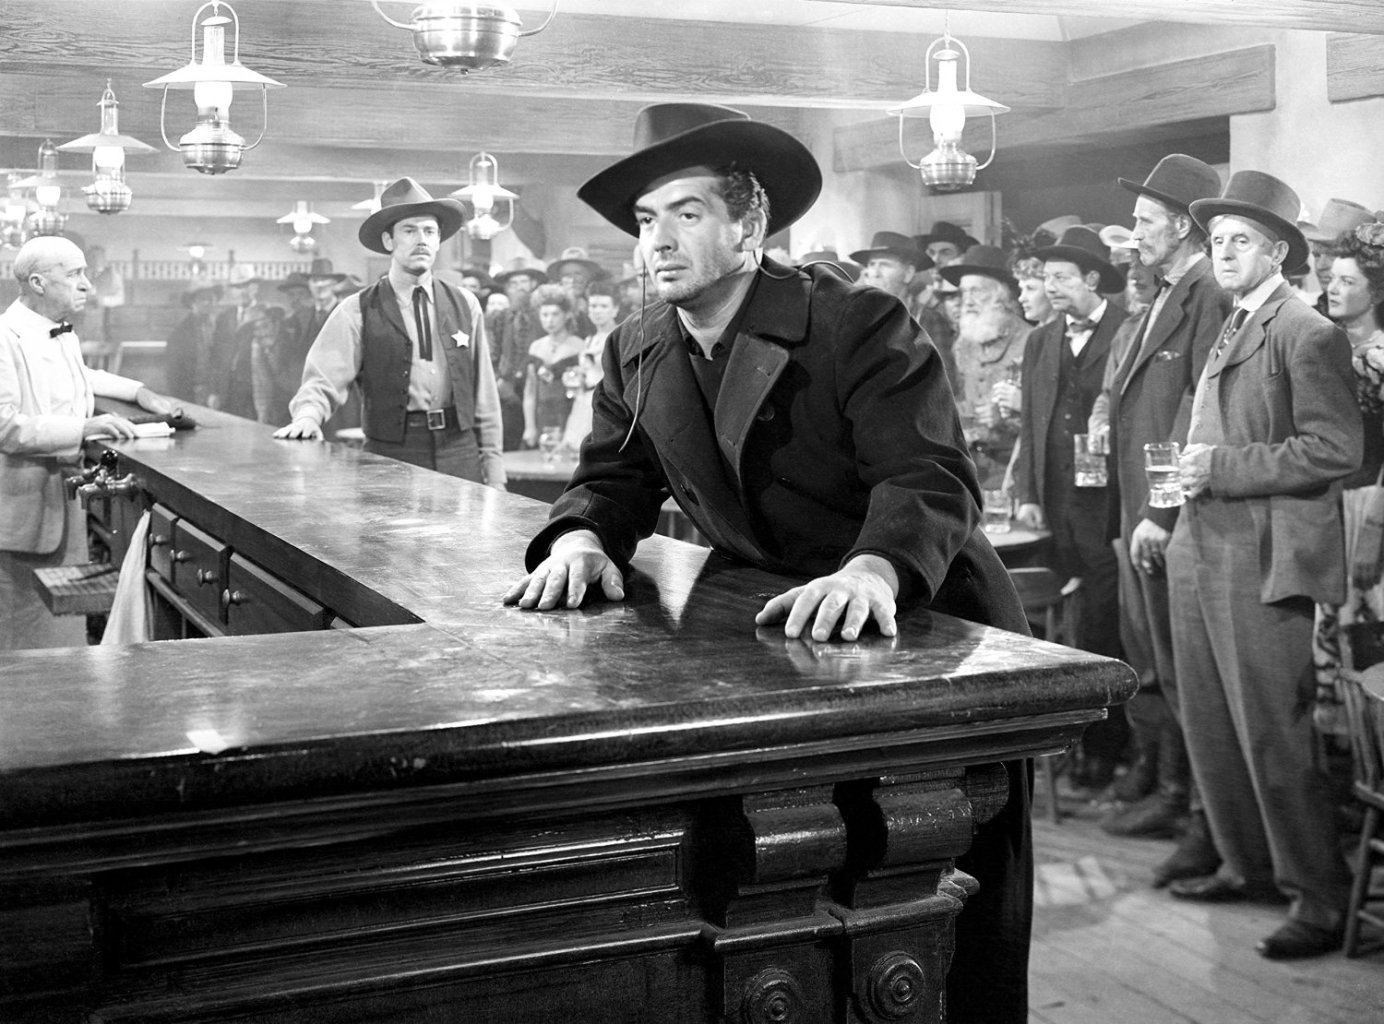 My Darling Clementine3